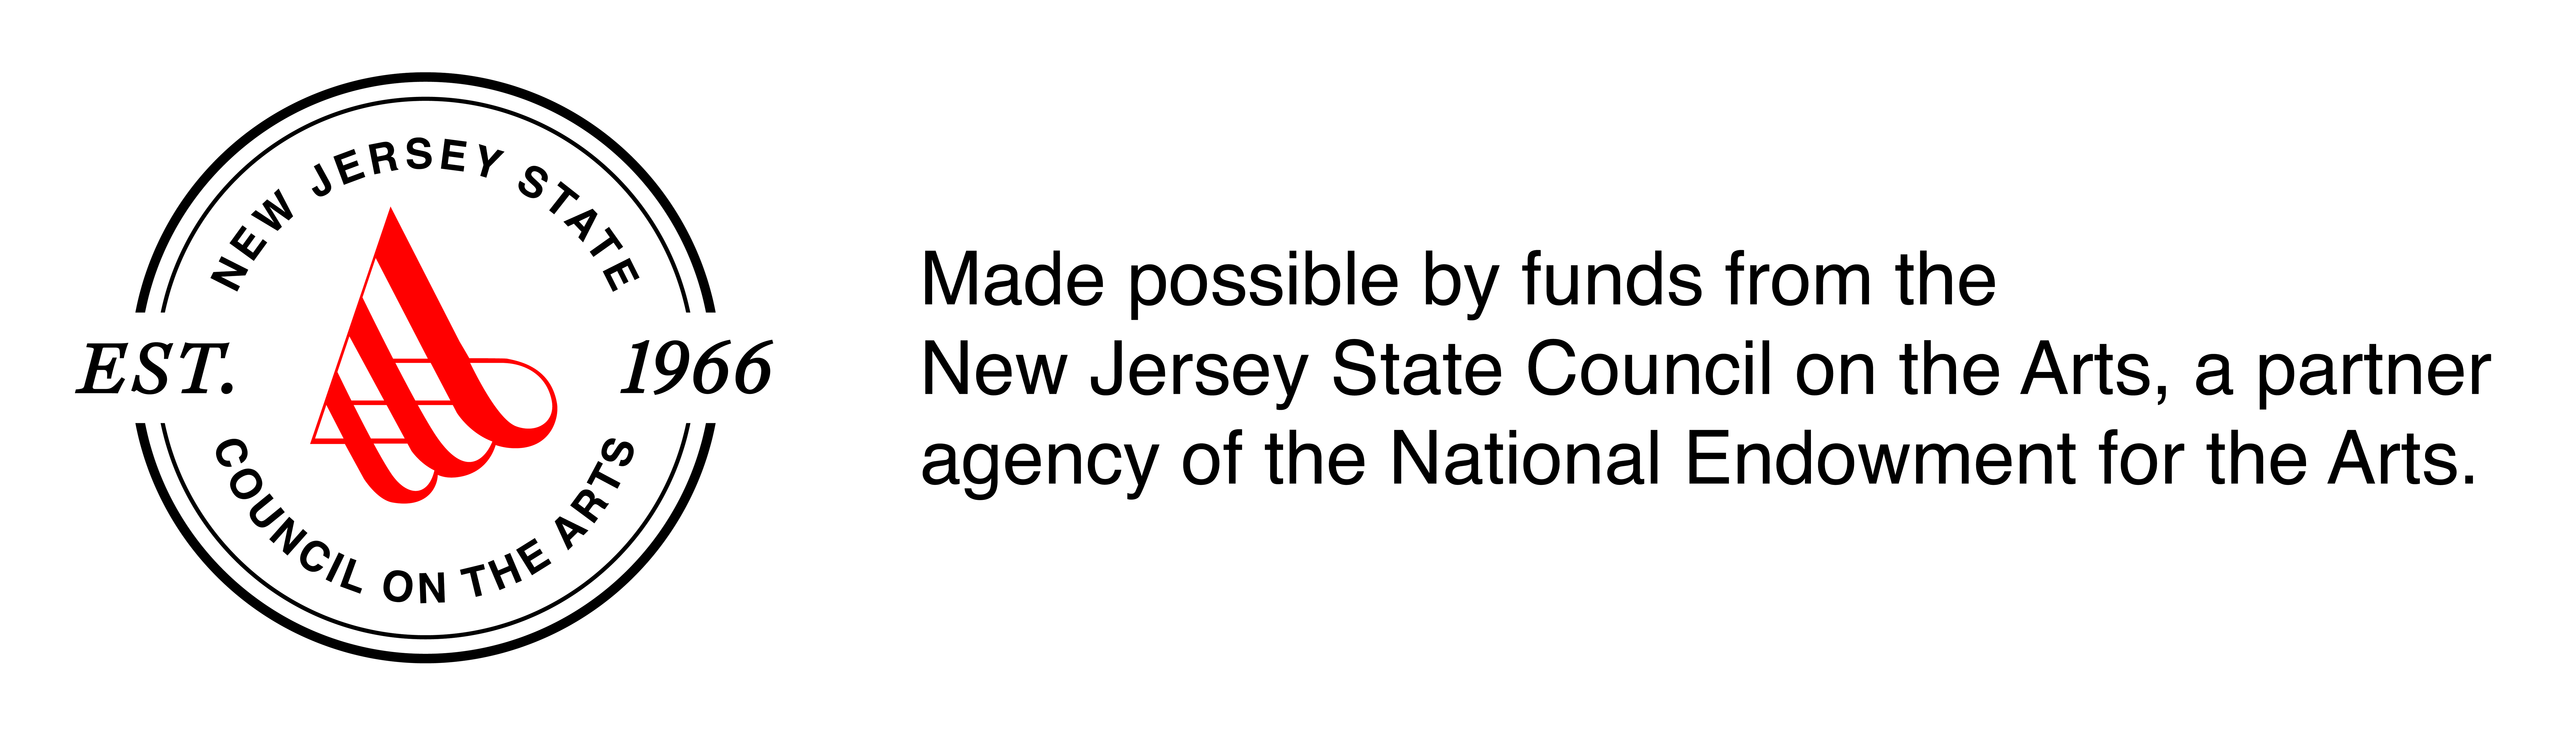 Made possible by funds from the New Jersey State Council on the Arts, a partner agency of the National Endowment for the Arts